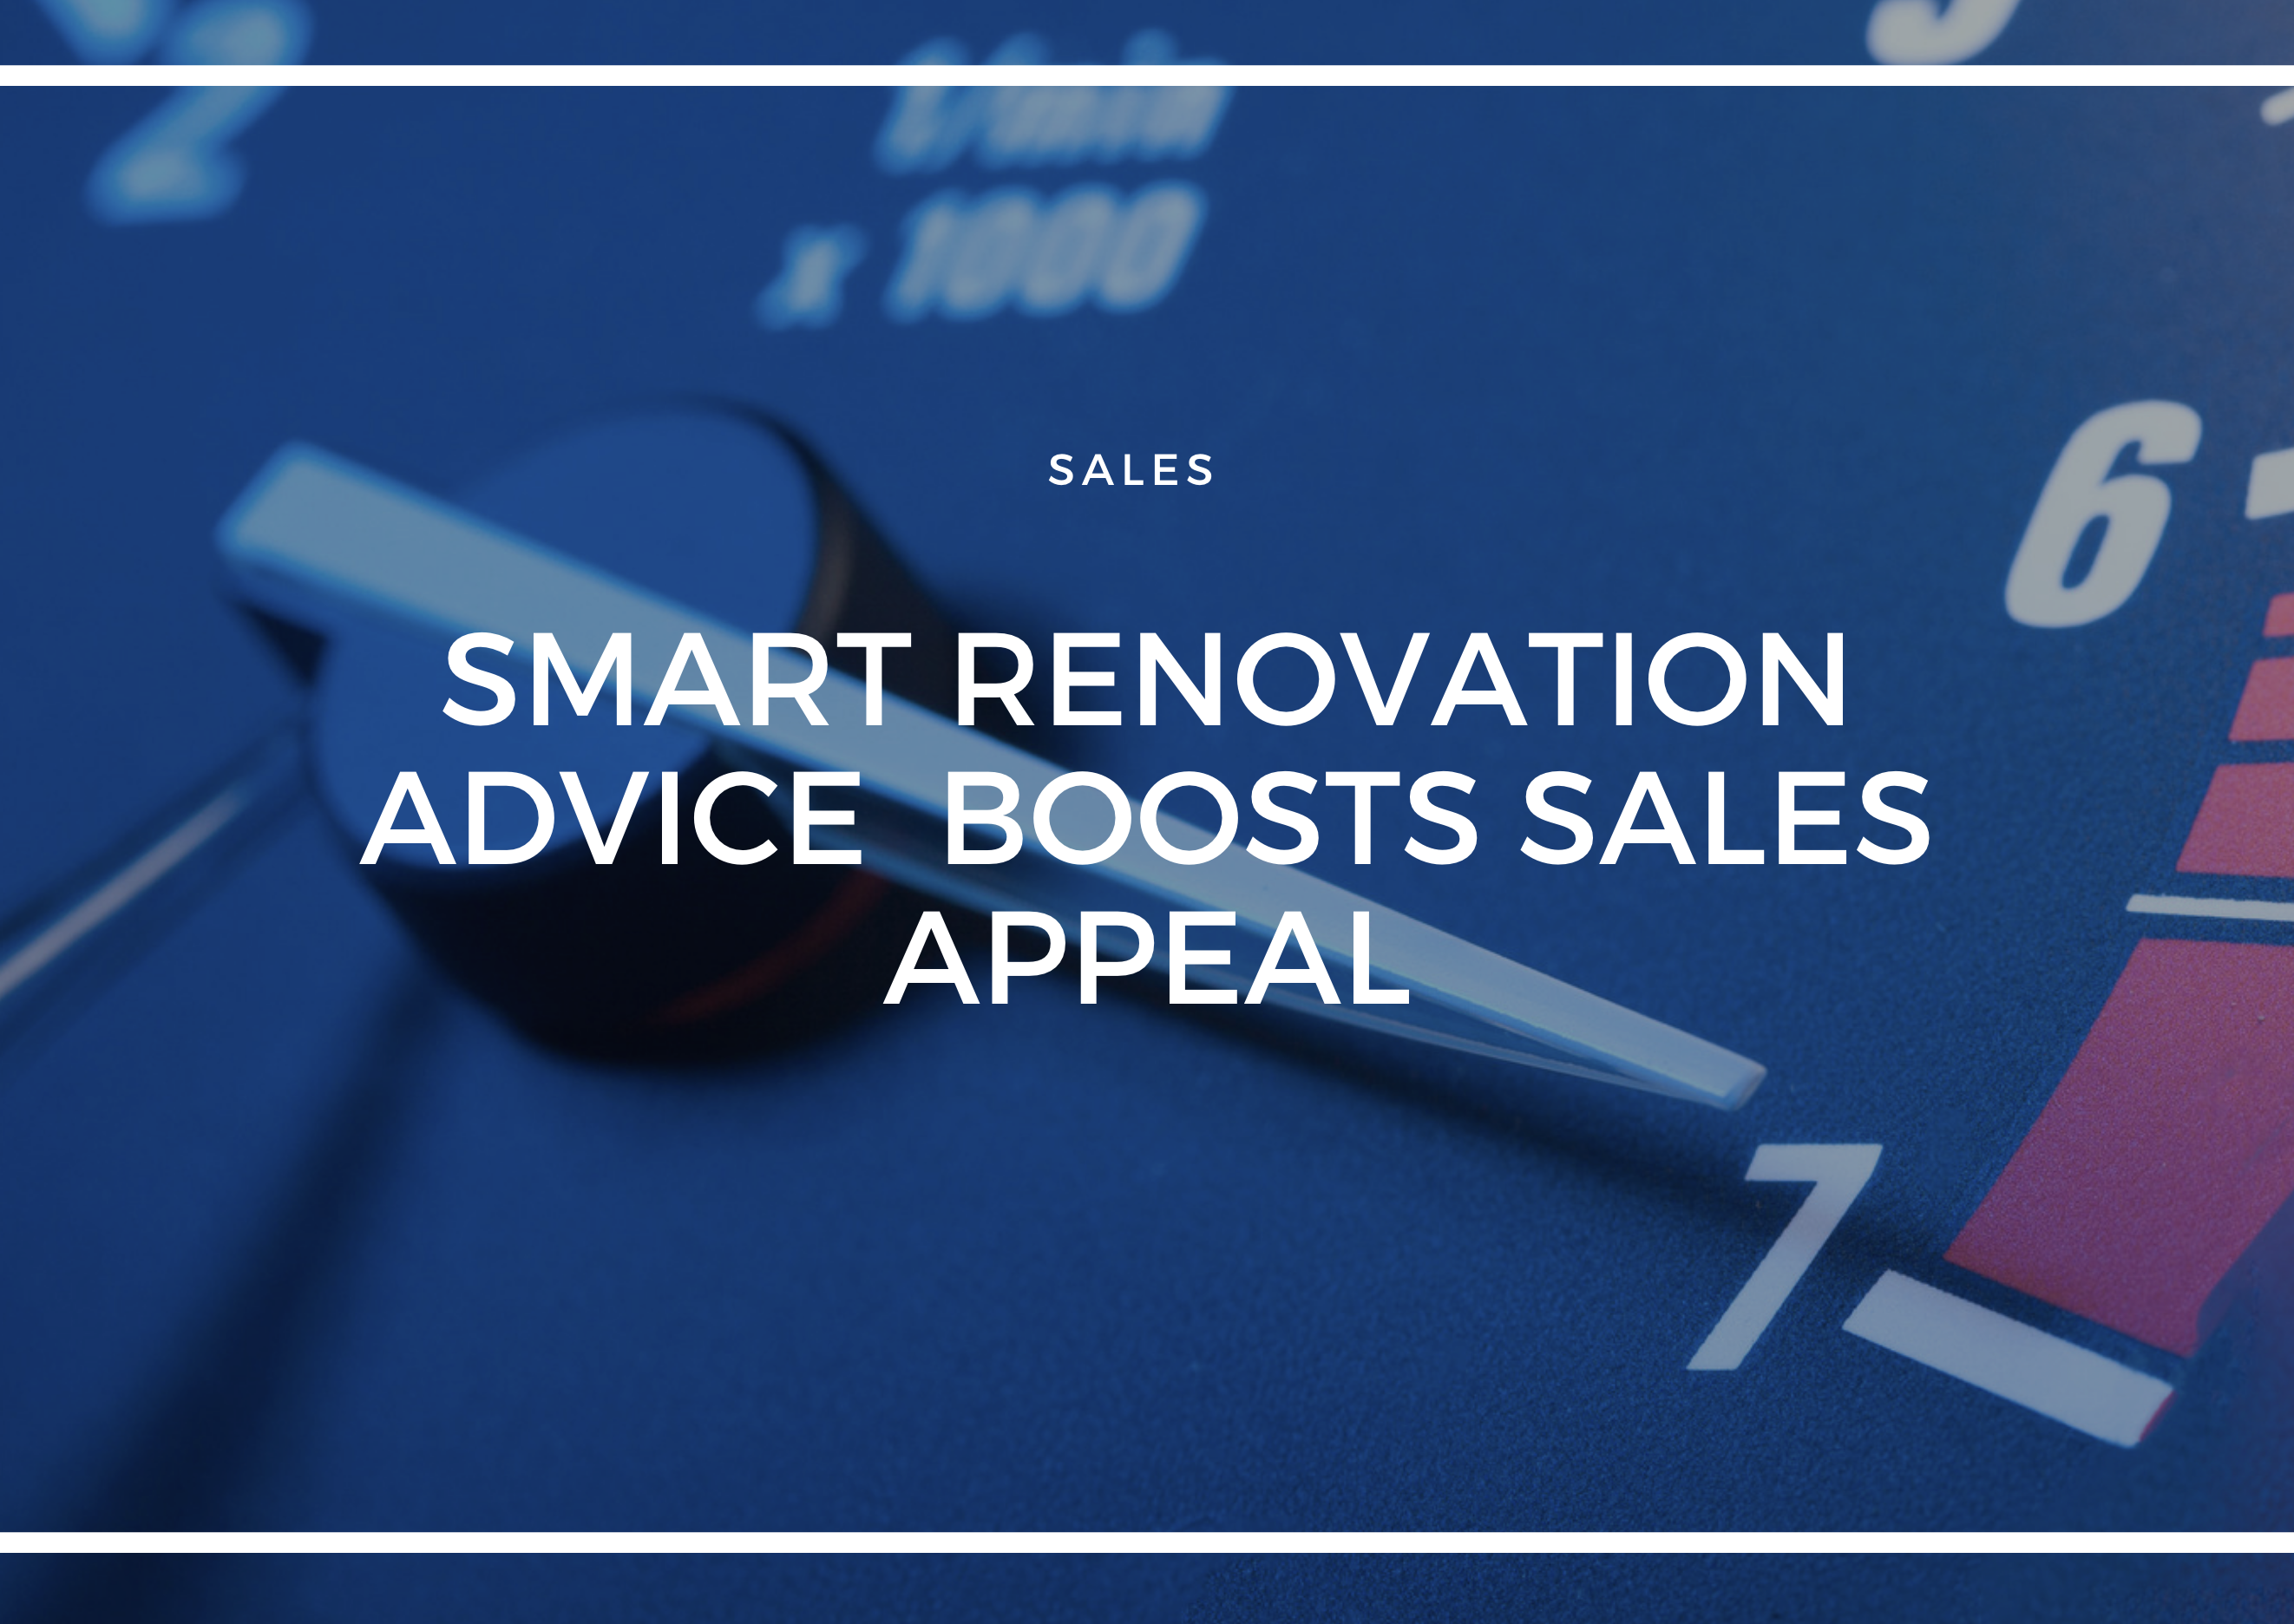 SMART RENOVATION ADVICE BOOSTS SALES APPEAL